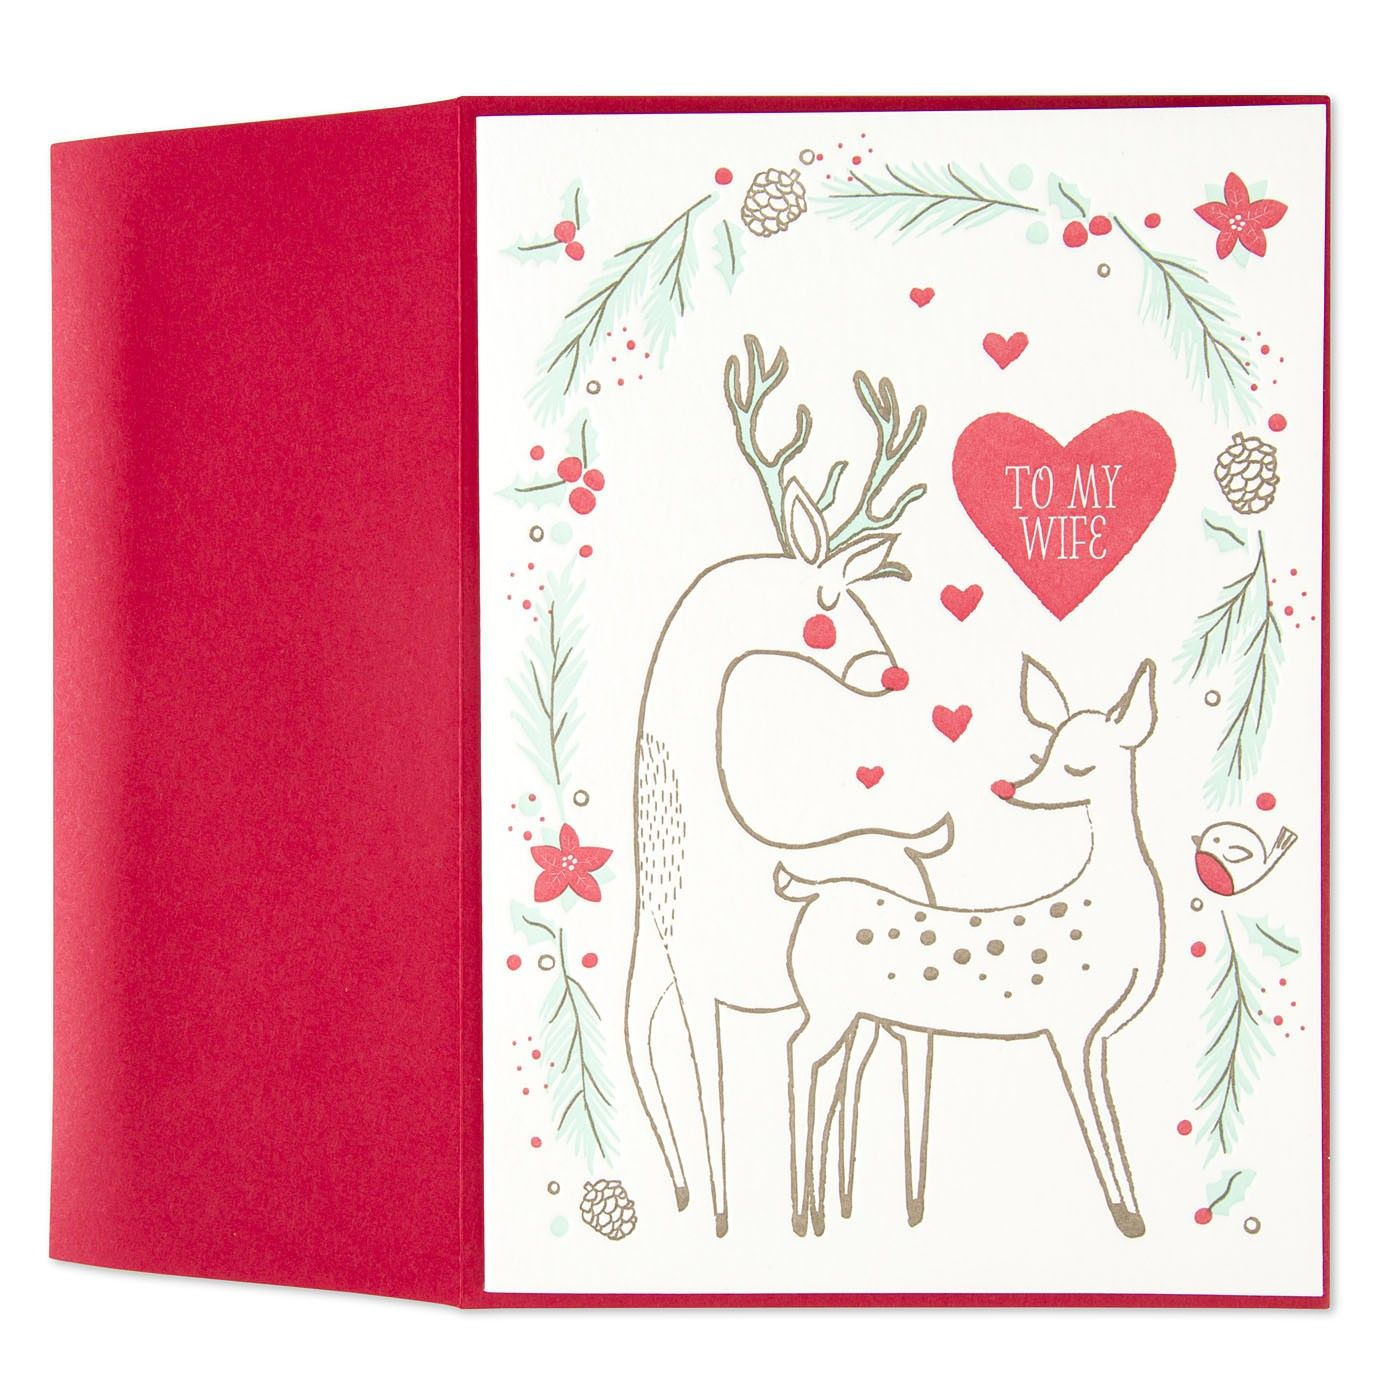 My Deer Wife Christmas Card For Wife Winter Cards Pinterest